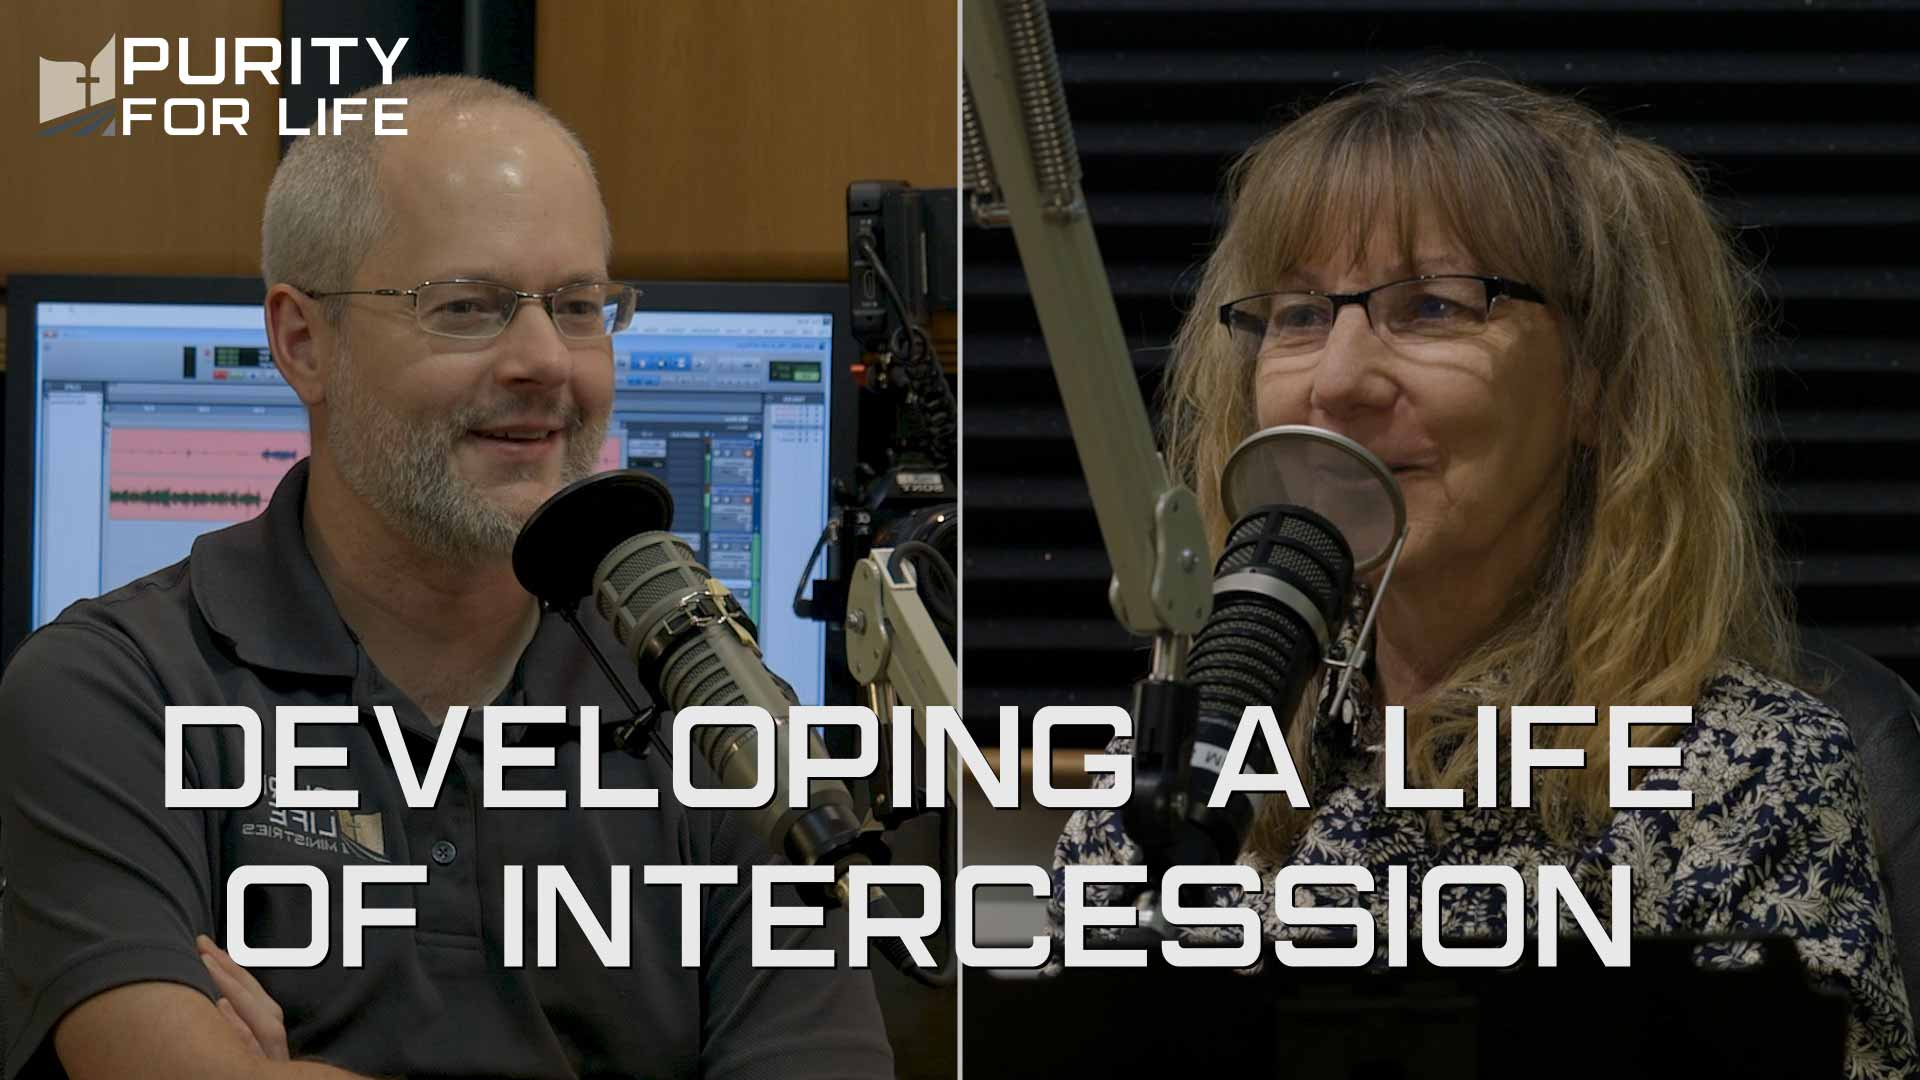 Purity for Life Video Segment - Developing a Life of Intercession